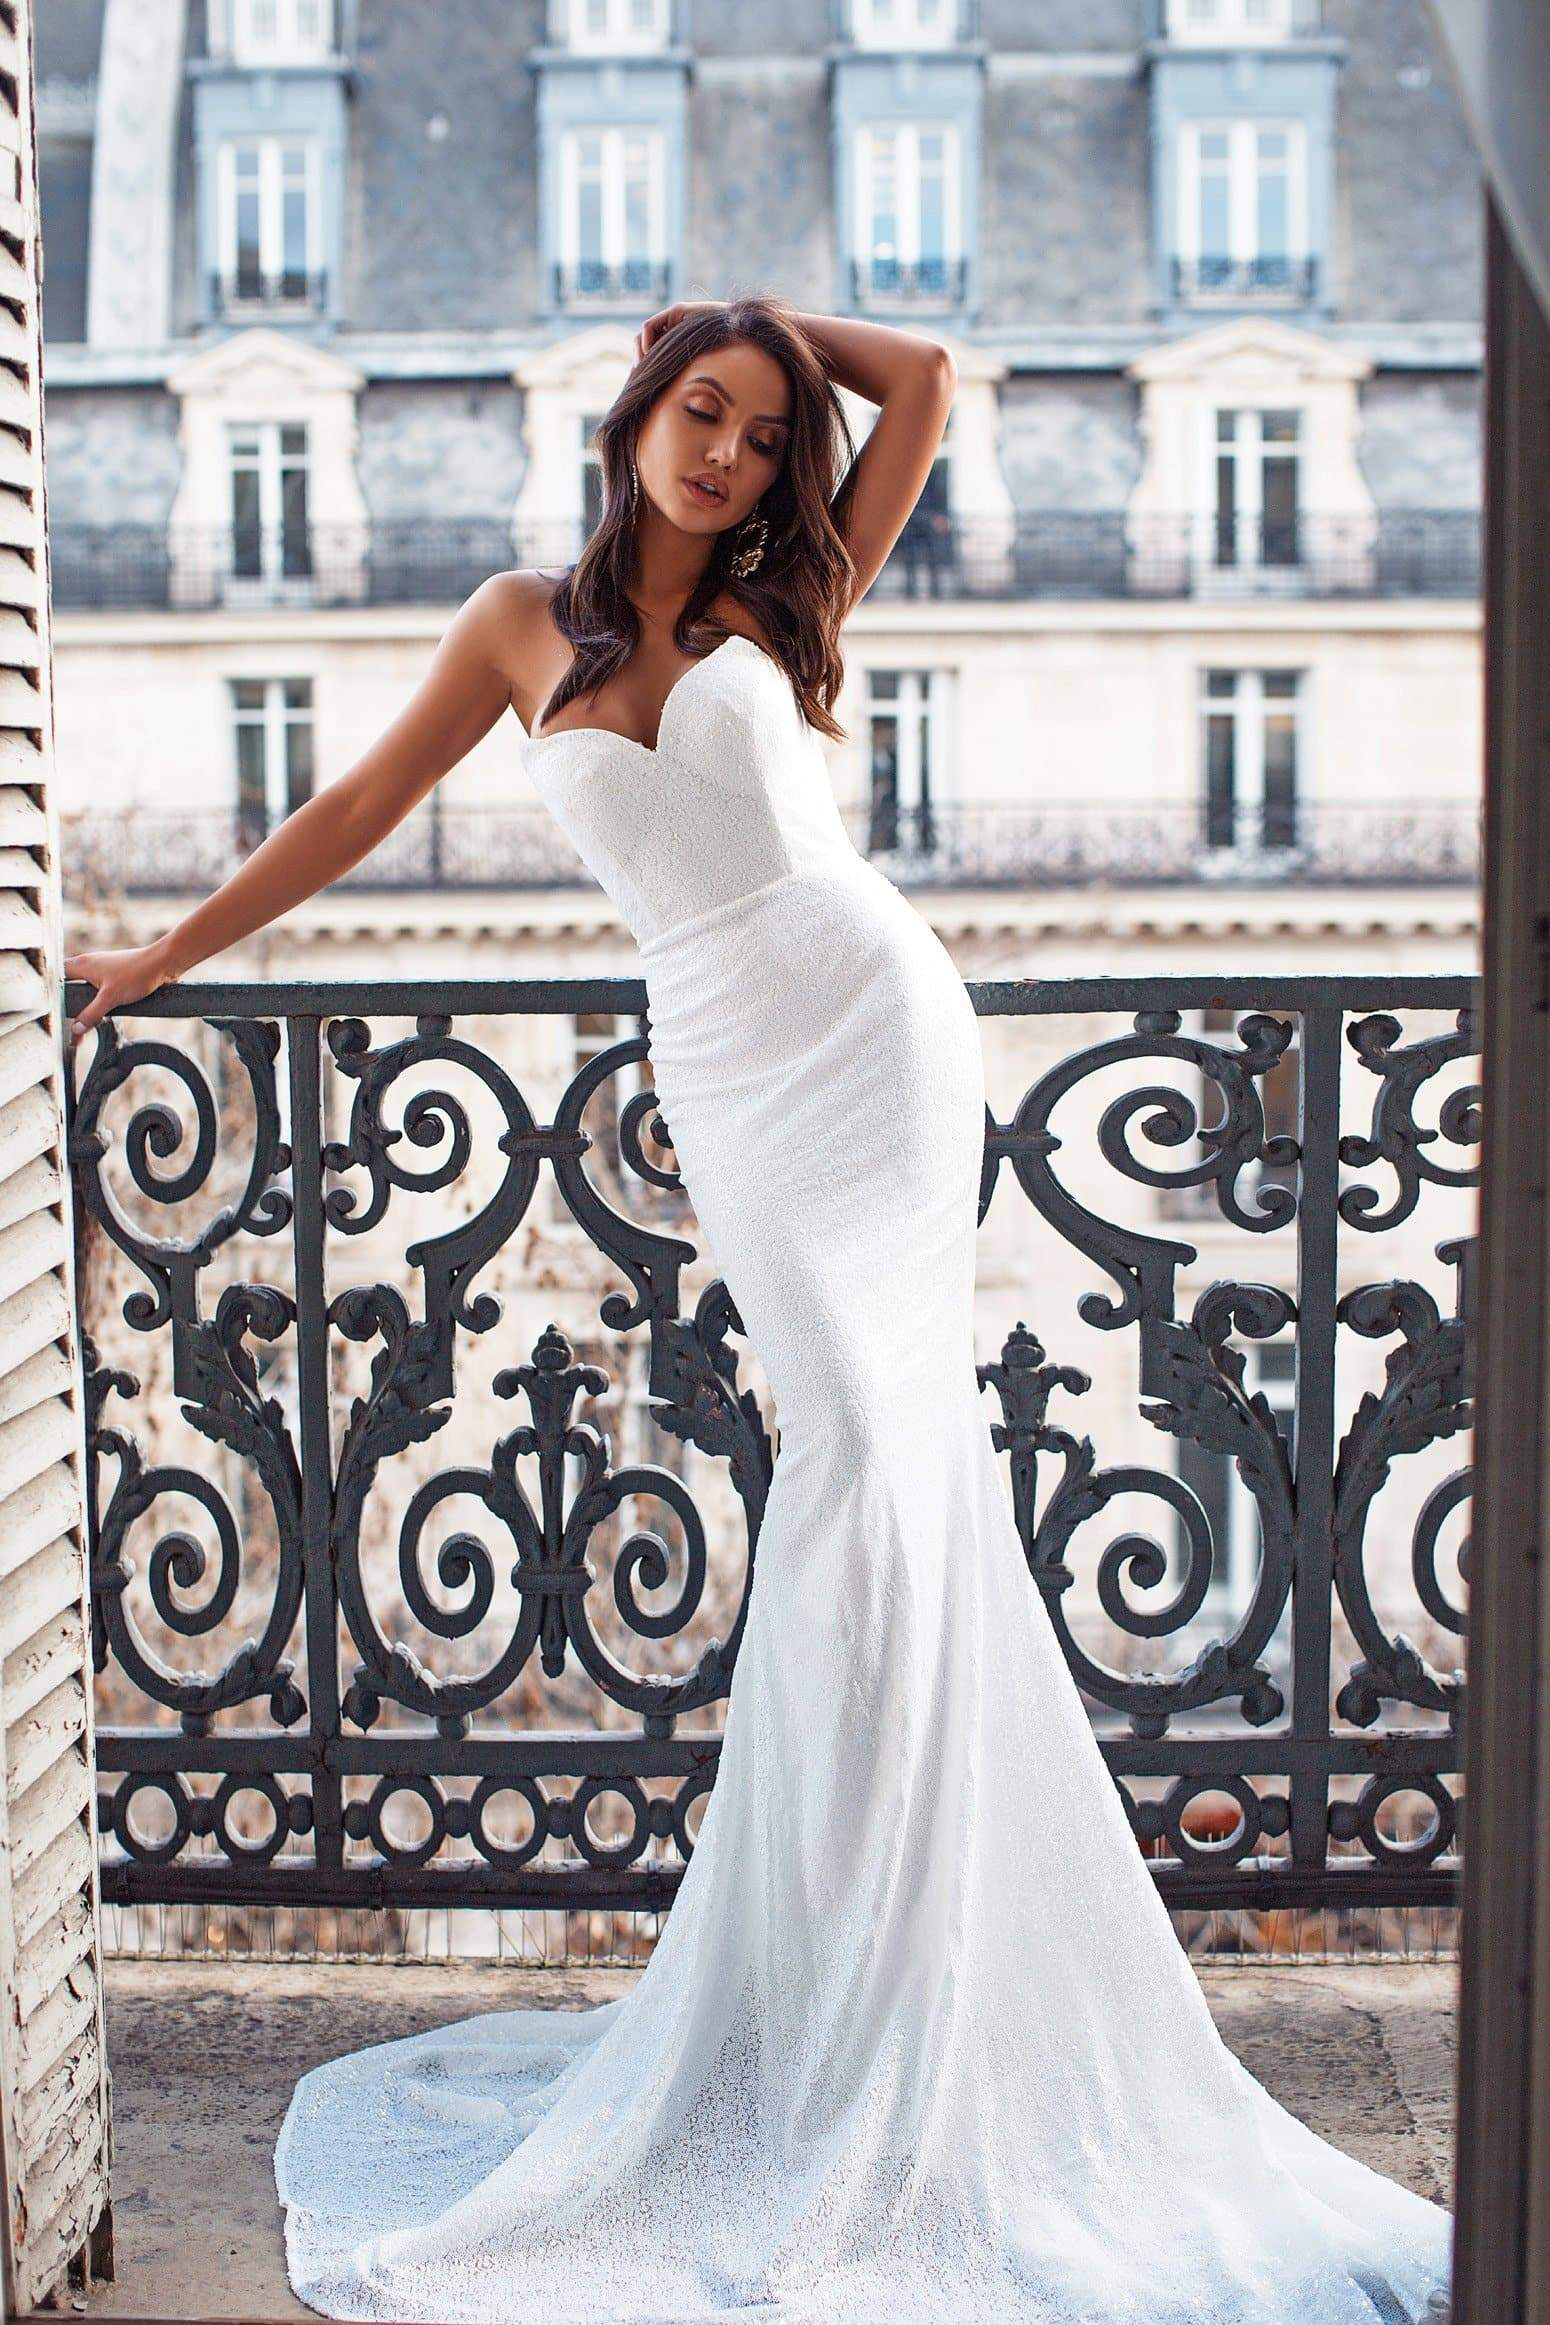 5d7a3c3acb3 Acel - White Sequin Gown with Mermaid Train   Strapless Neckline